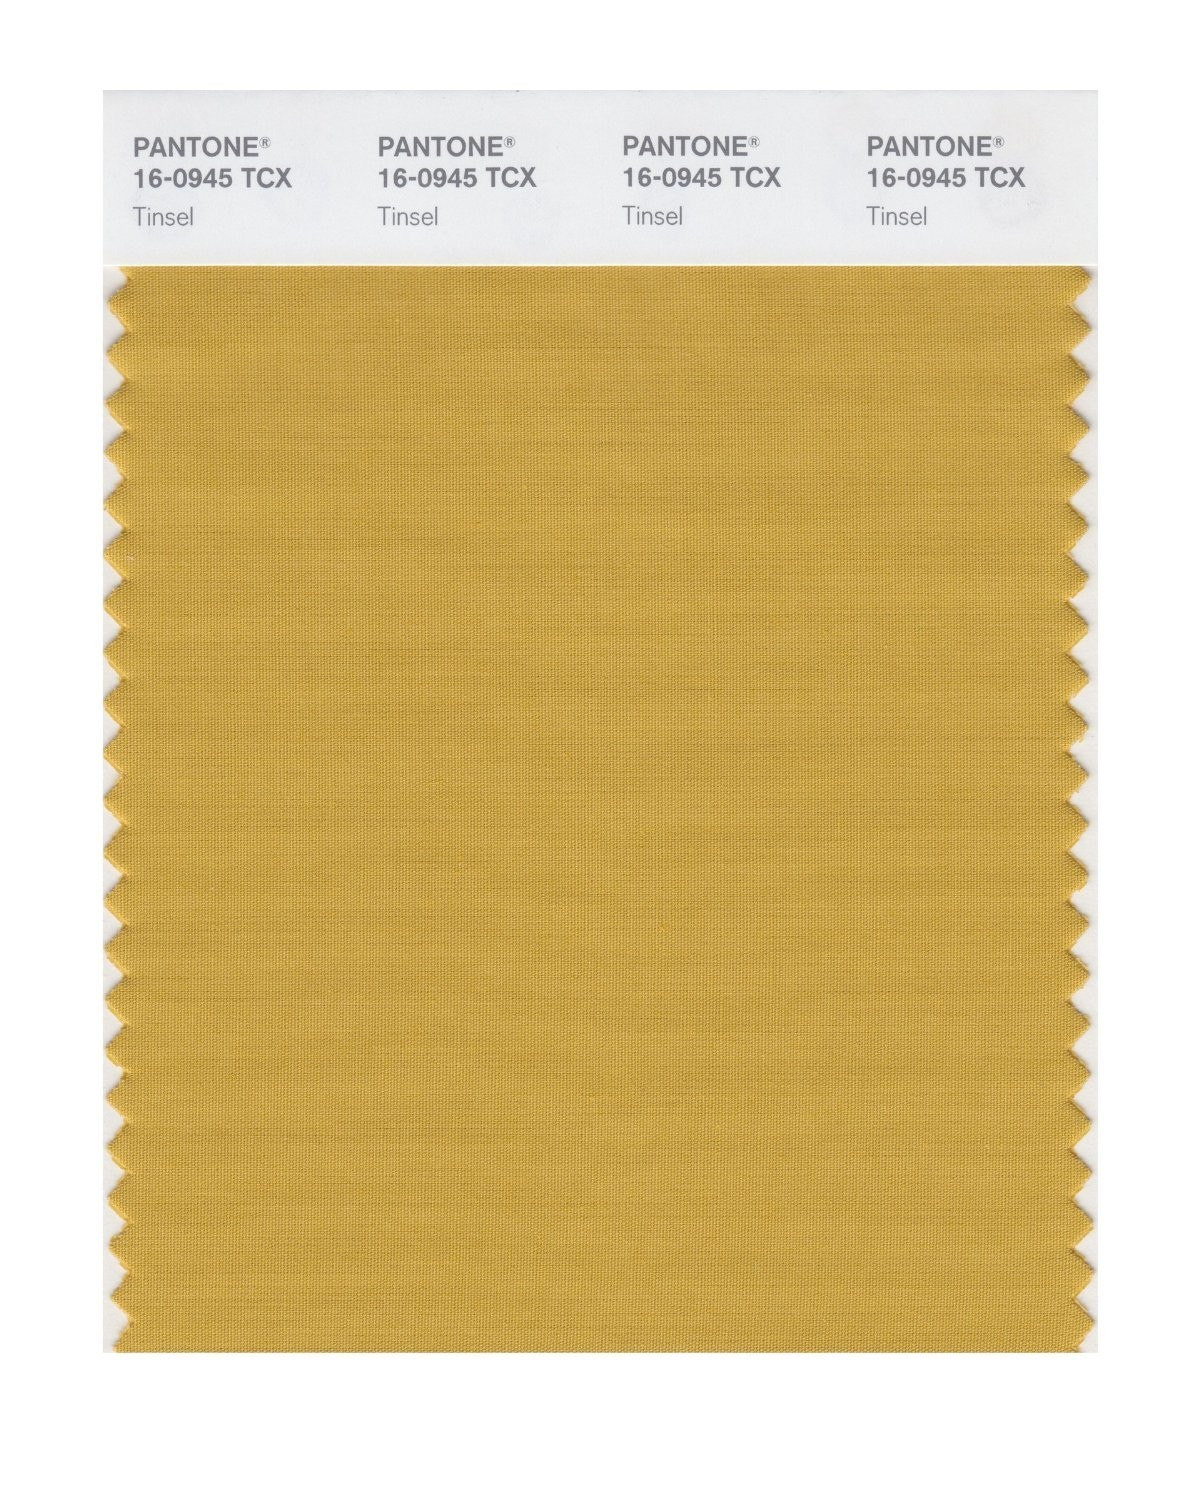 Pantone 16-0945 TCX Swatch Card Tinsel